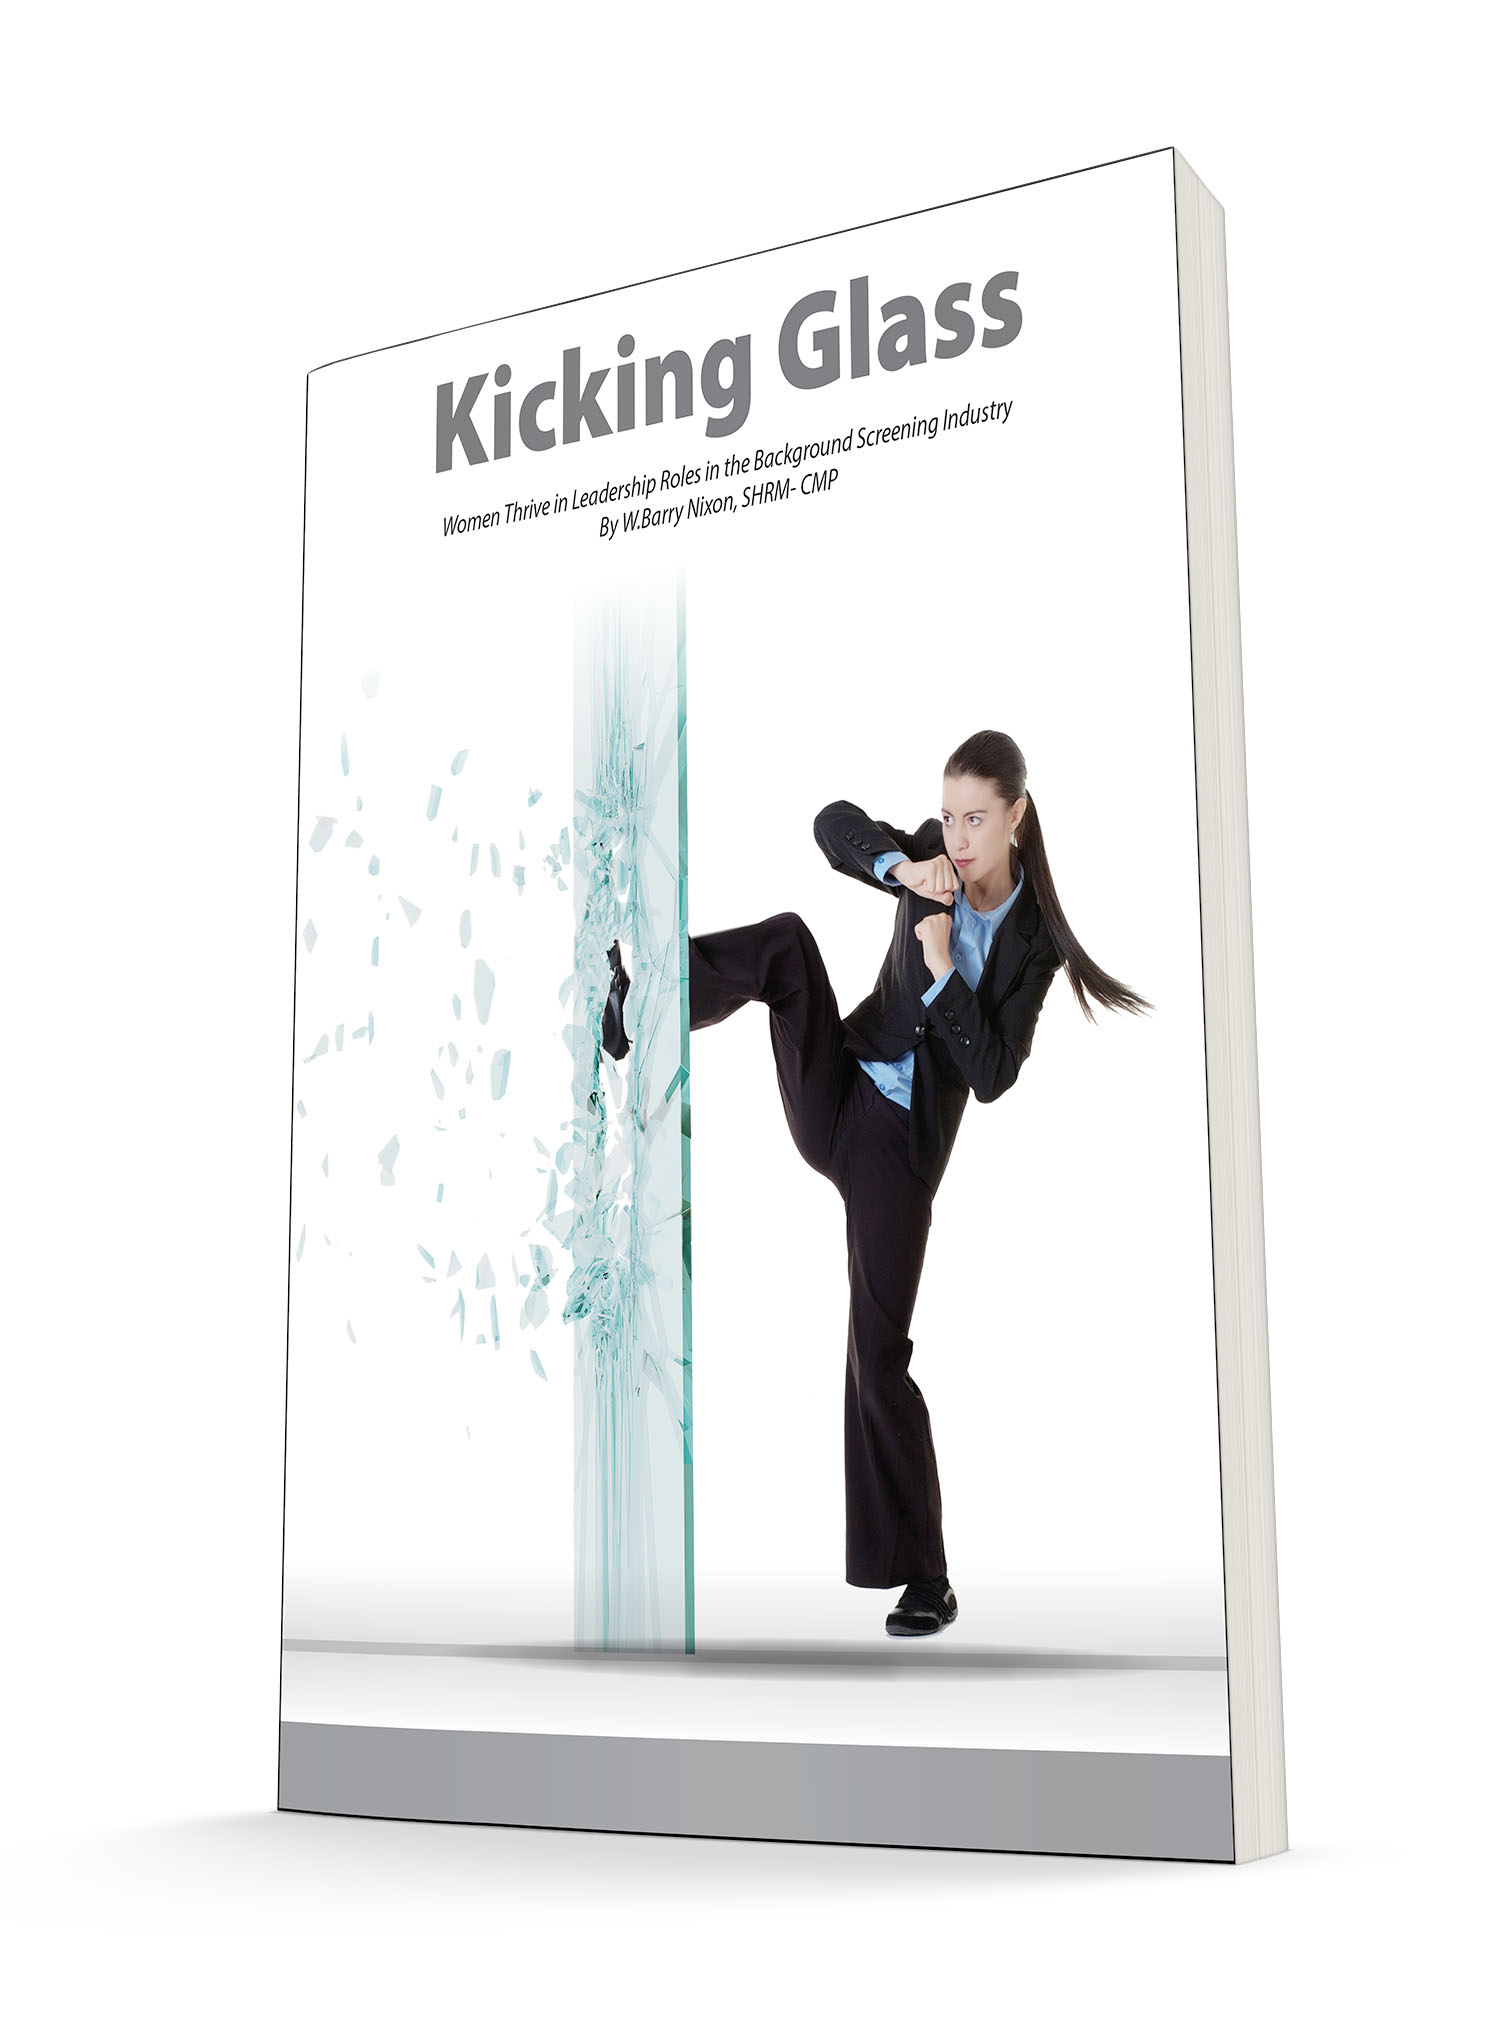 U0027Kicking Glass: Women Thriving In Leadership Roles In The Background  Screening Industryu0027 Published By PreemploymentDirectory.com